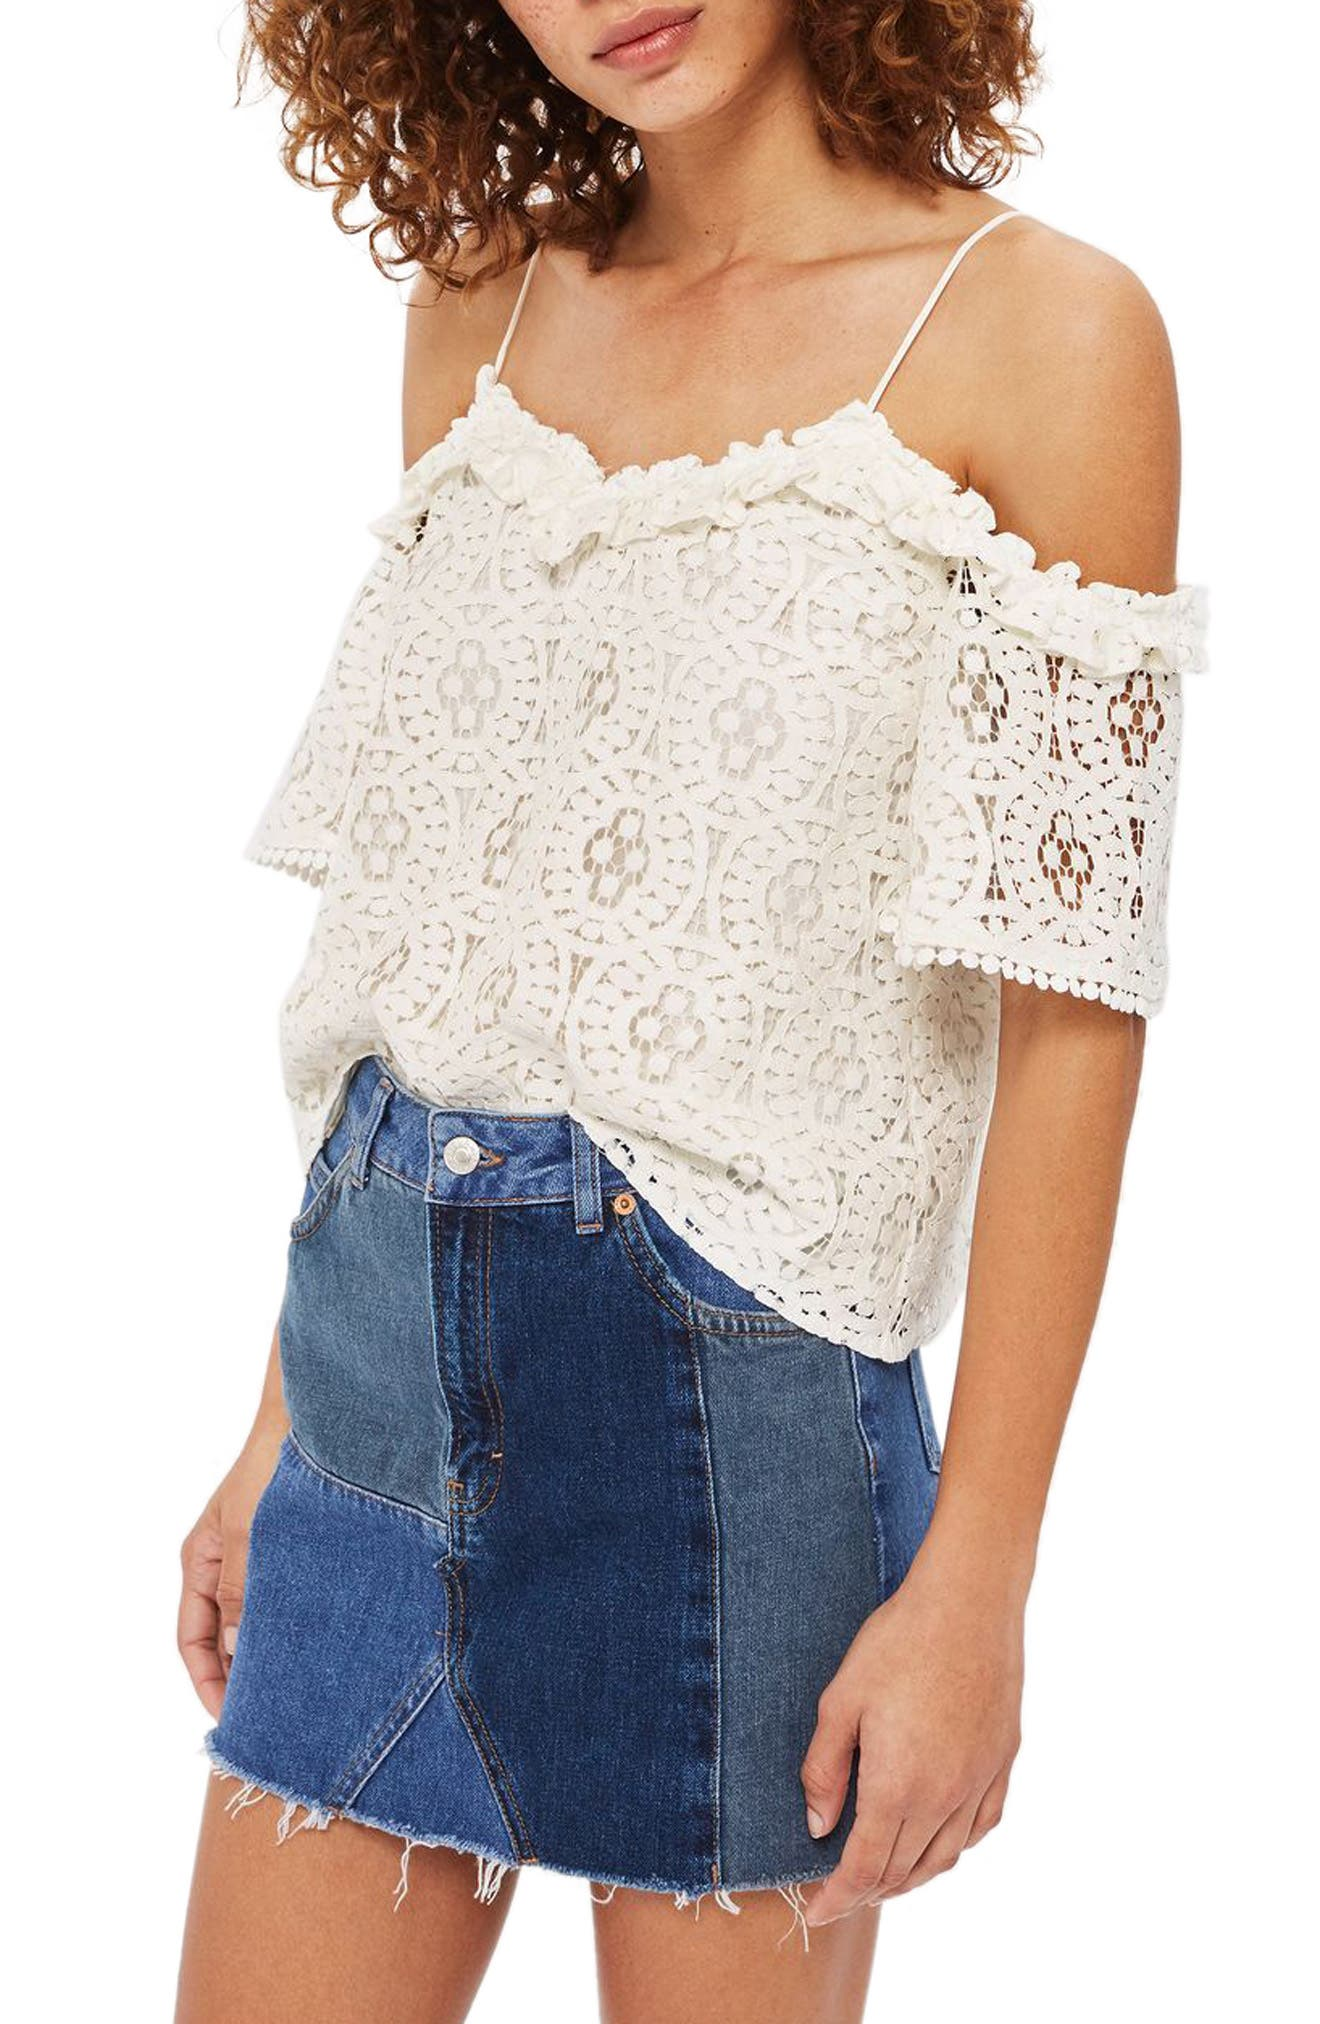 Alternate Image 1 Selected - Topshop Ruffle Lace Off the Shoulder Top